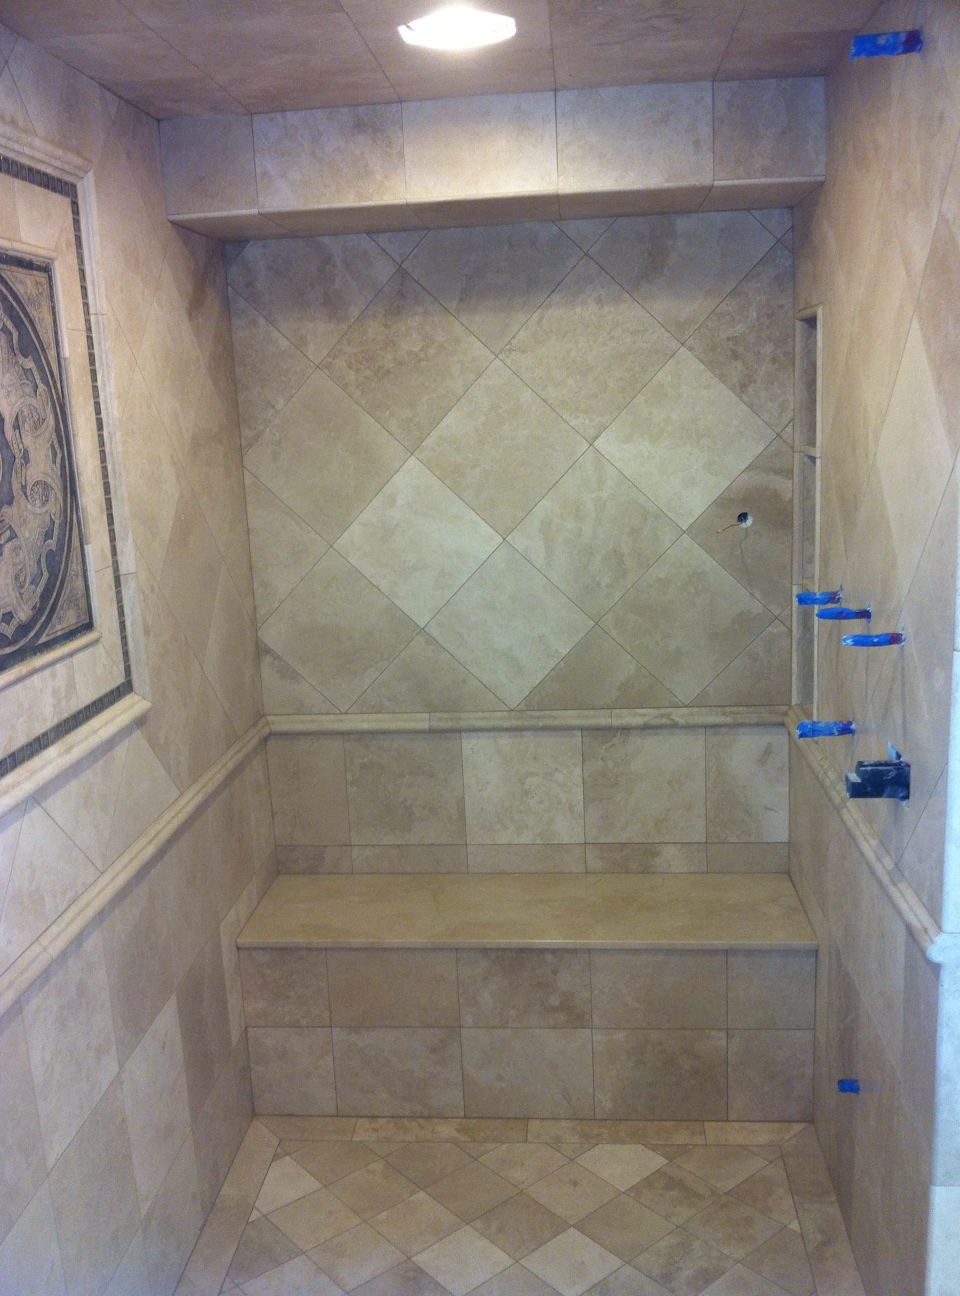 shower seat published january 9 at 960 in custom tile